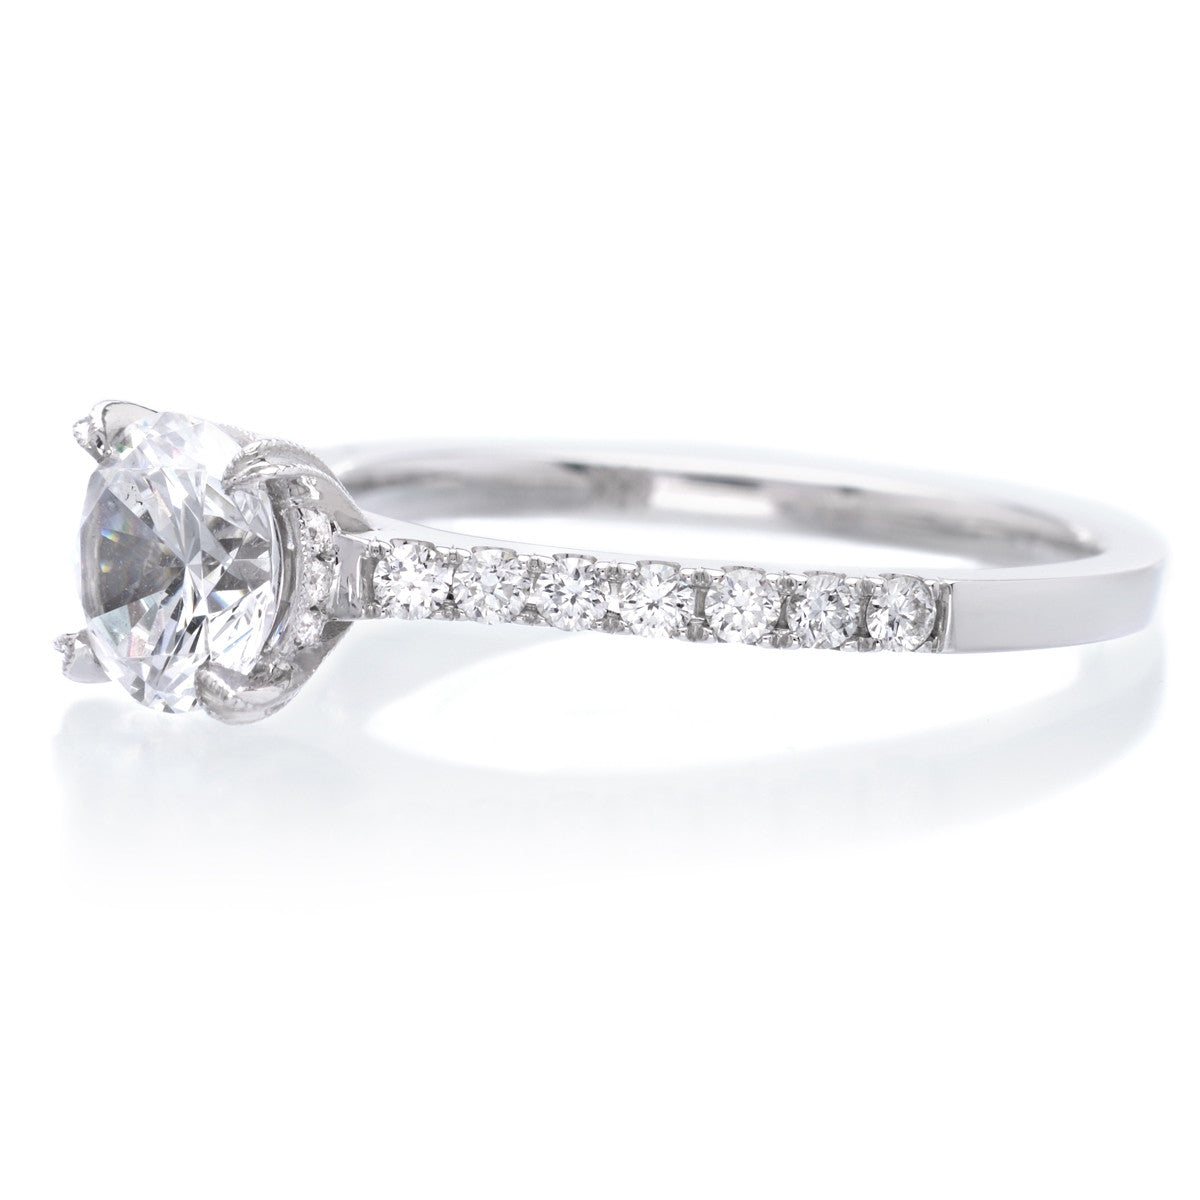 18K White Gold Classic Prong-Set Engagement Ring Setting